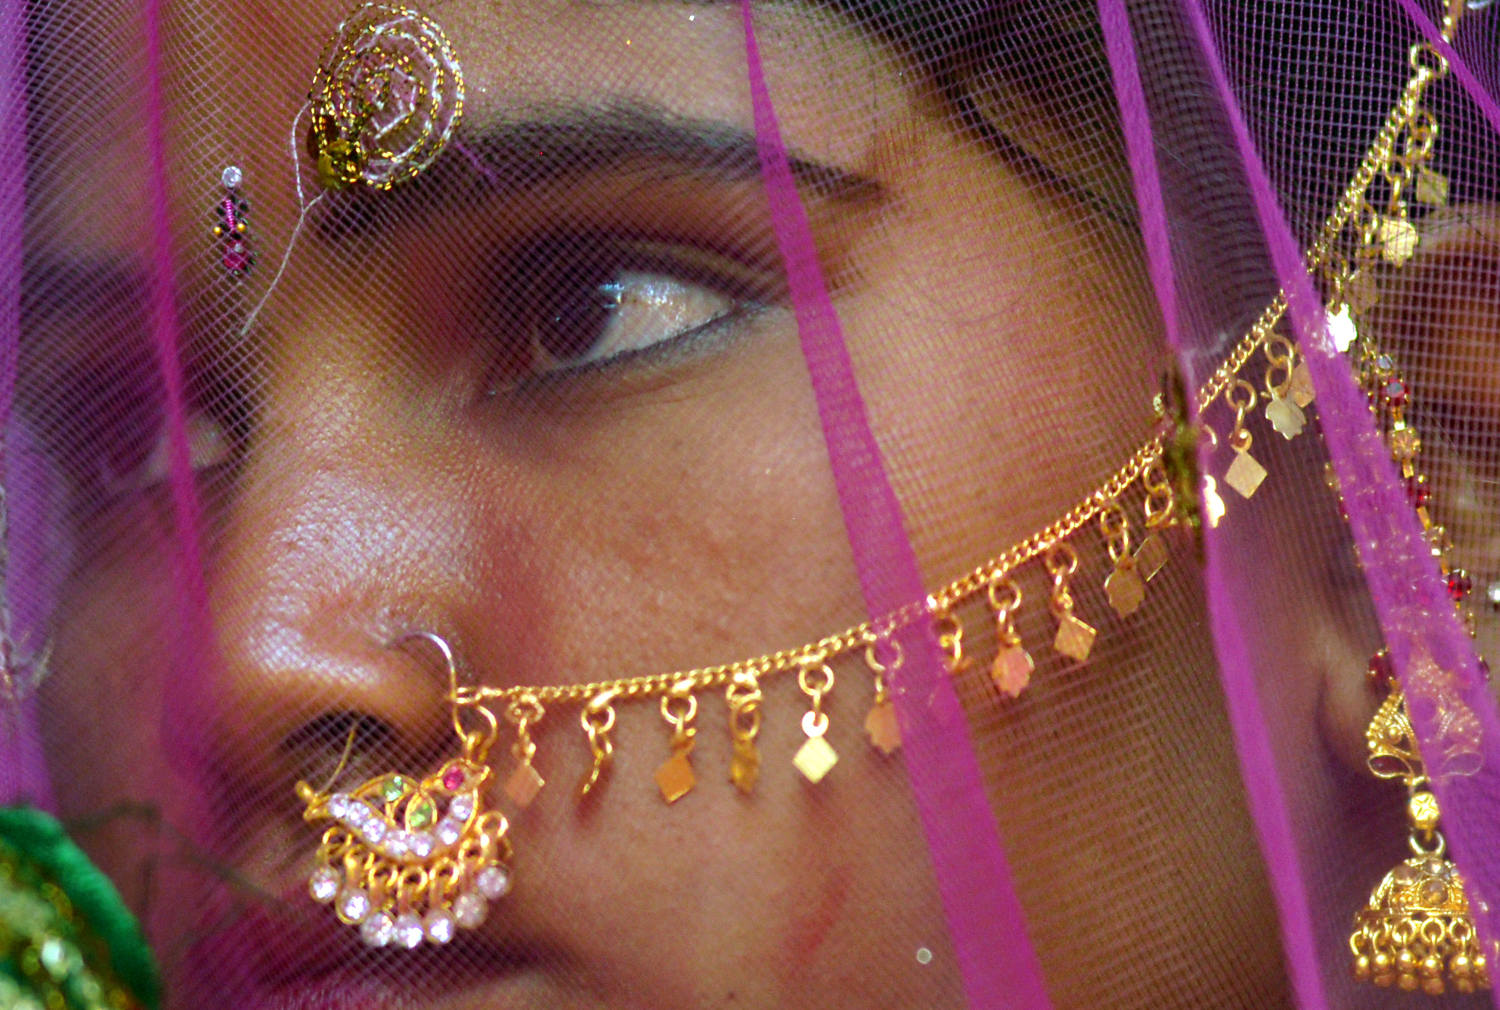 jharkhand-releases-action-plan-to-end-child-marriage